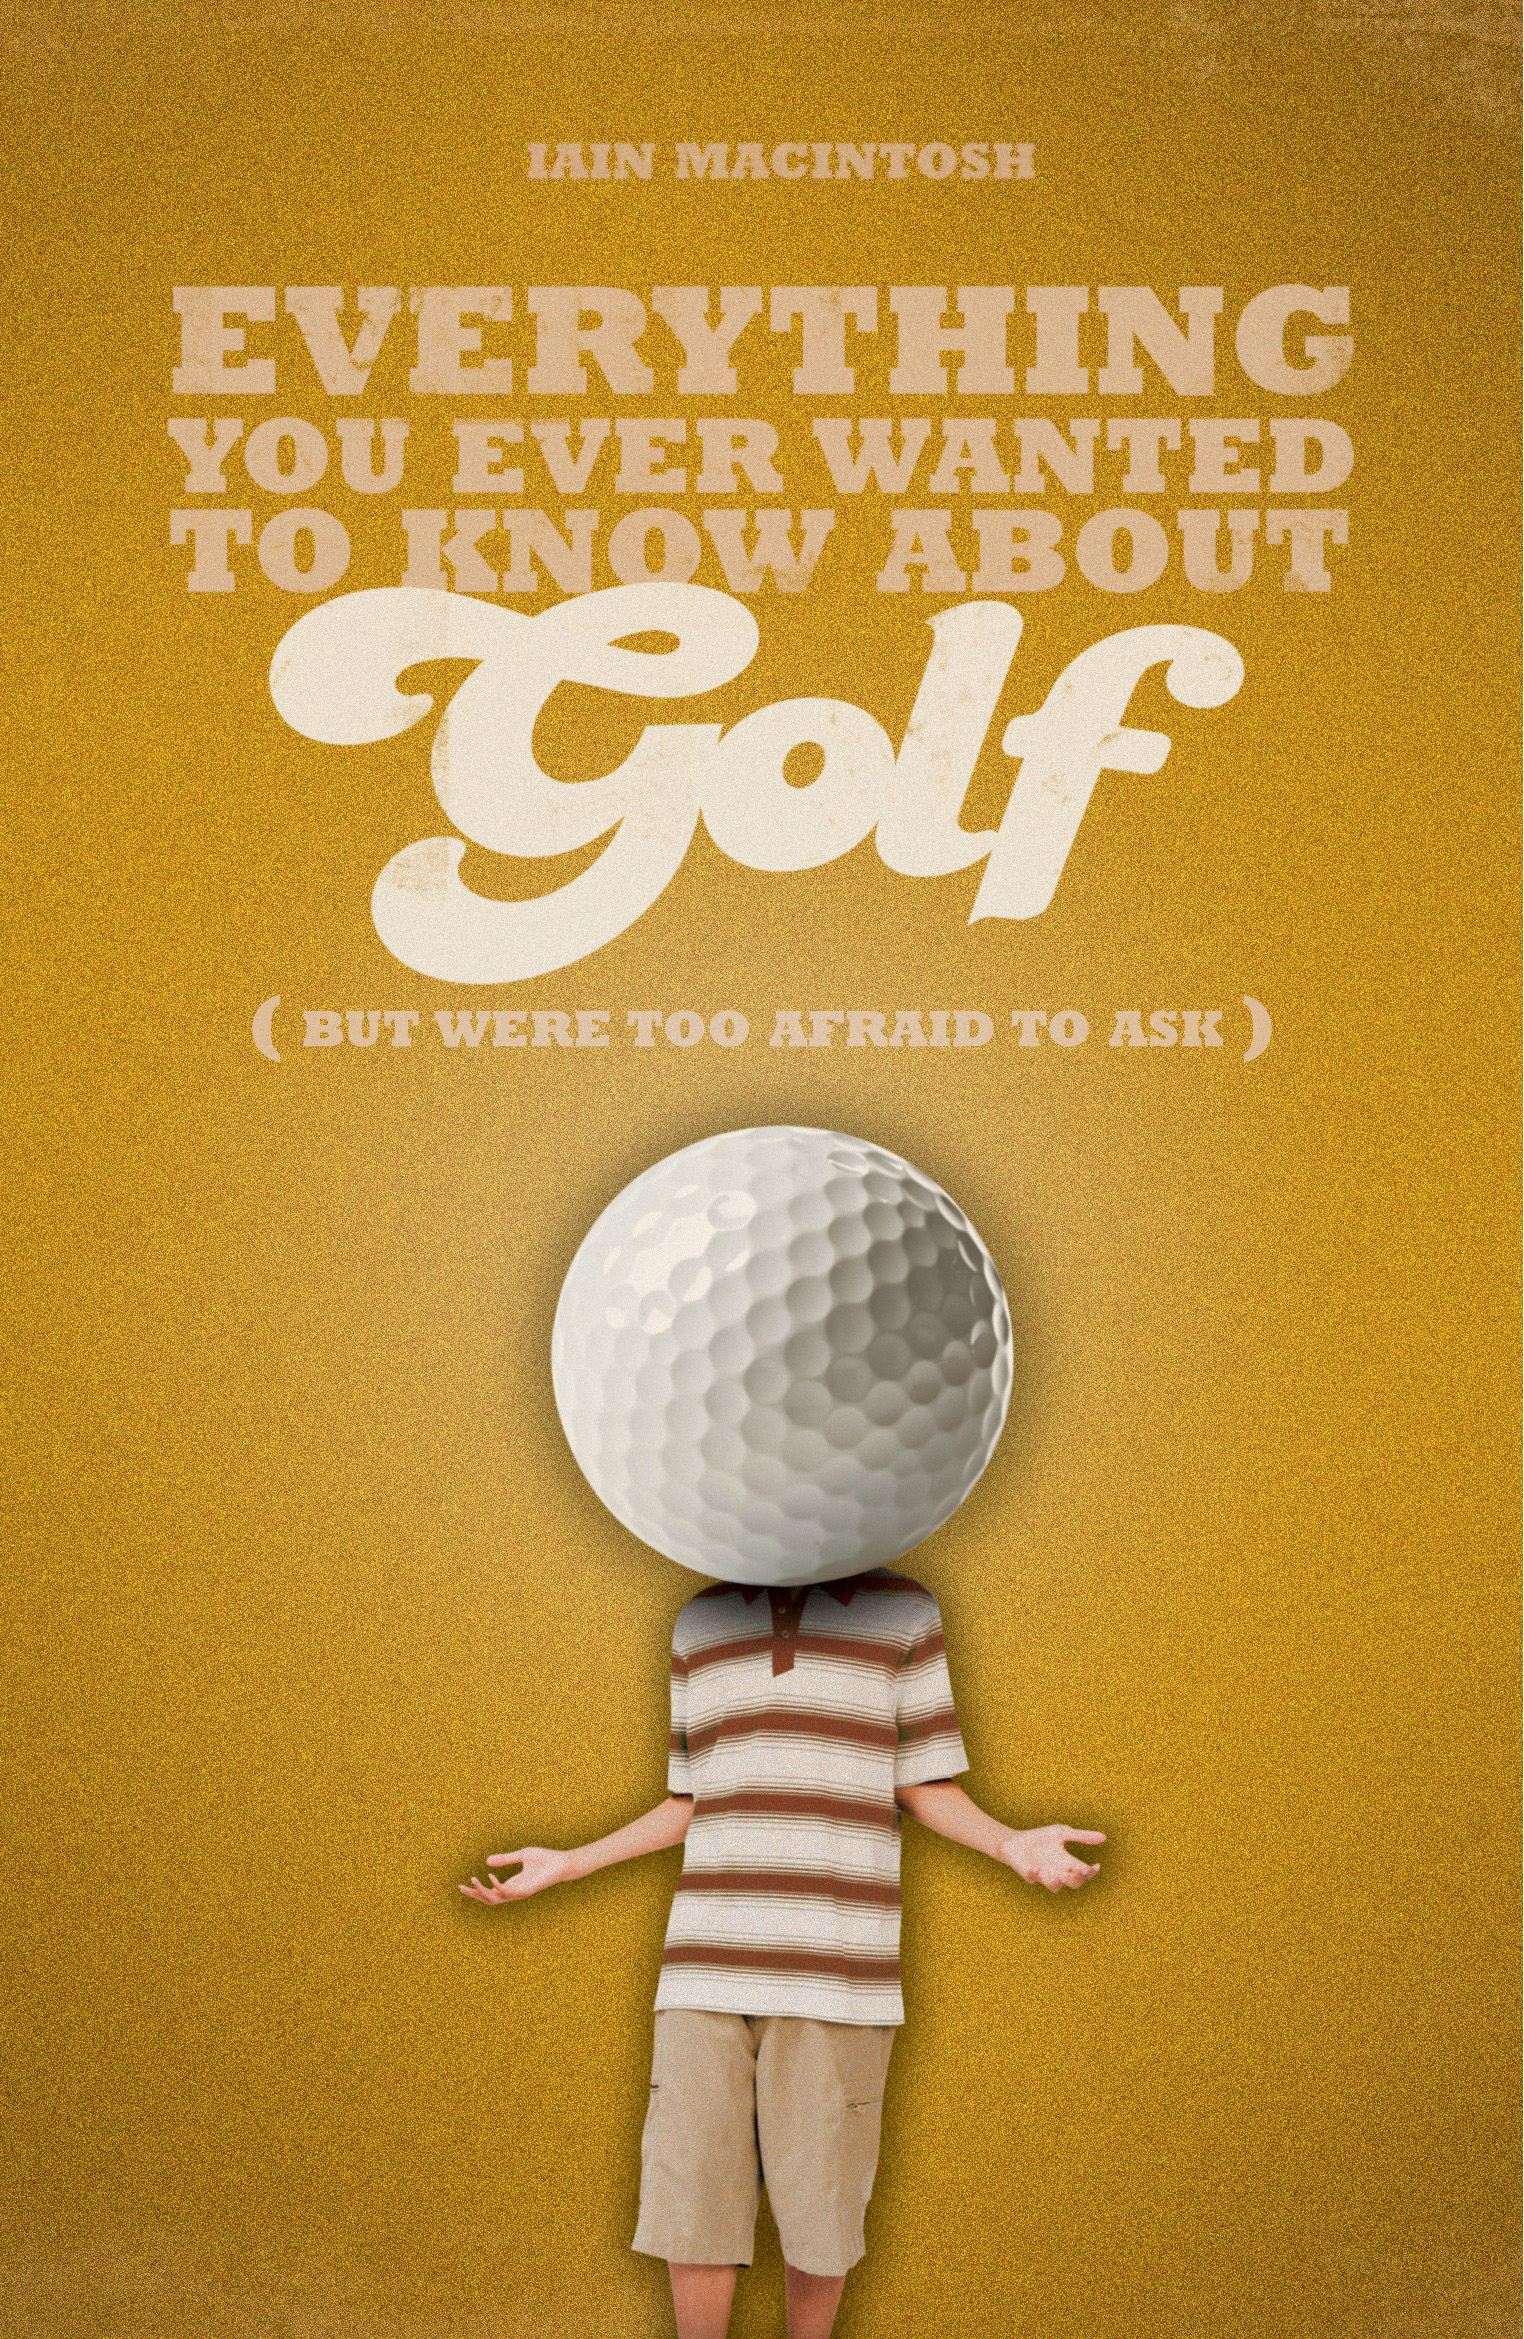 Everything You Ever Wanted to Know About Golf But Were too Afraid to Ask